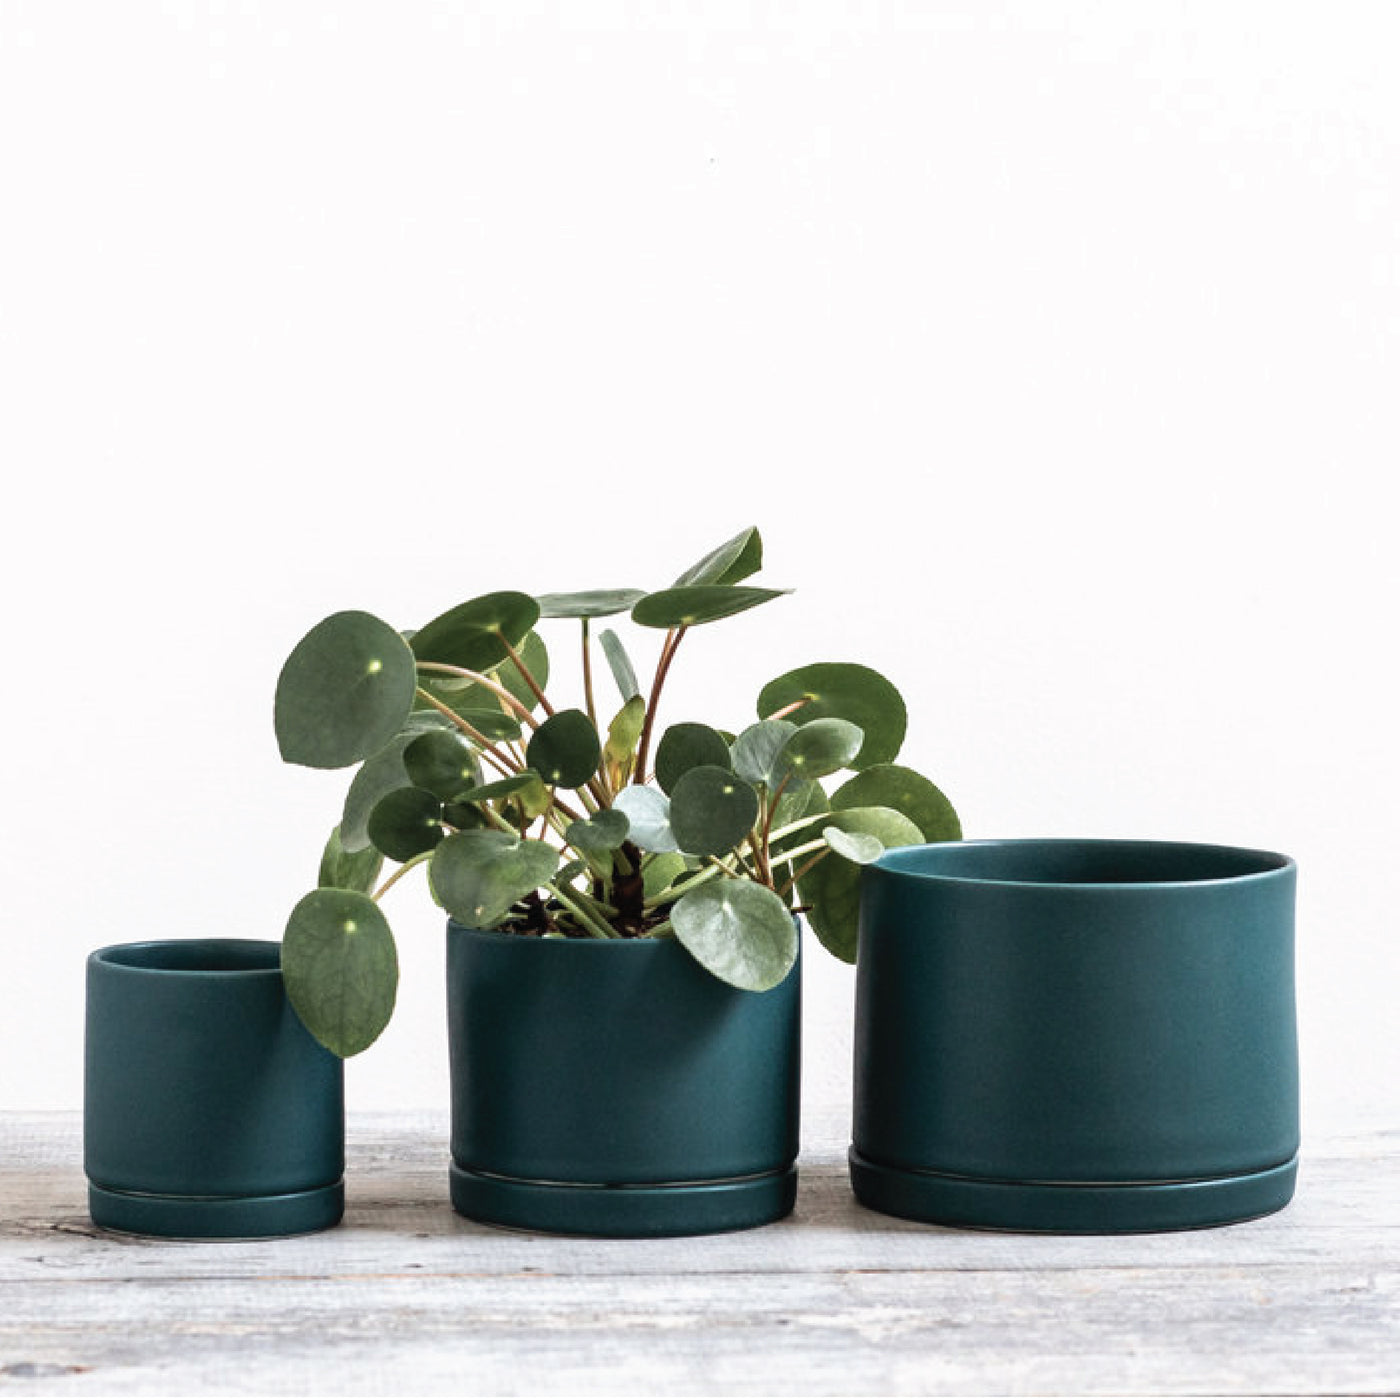 Teal Handmade Ceramic Planter